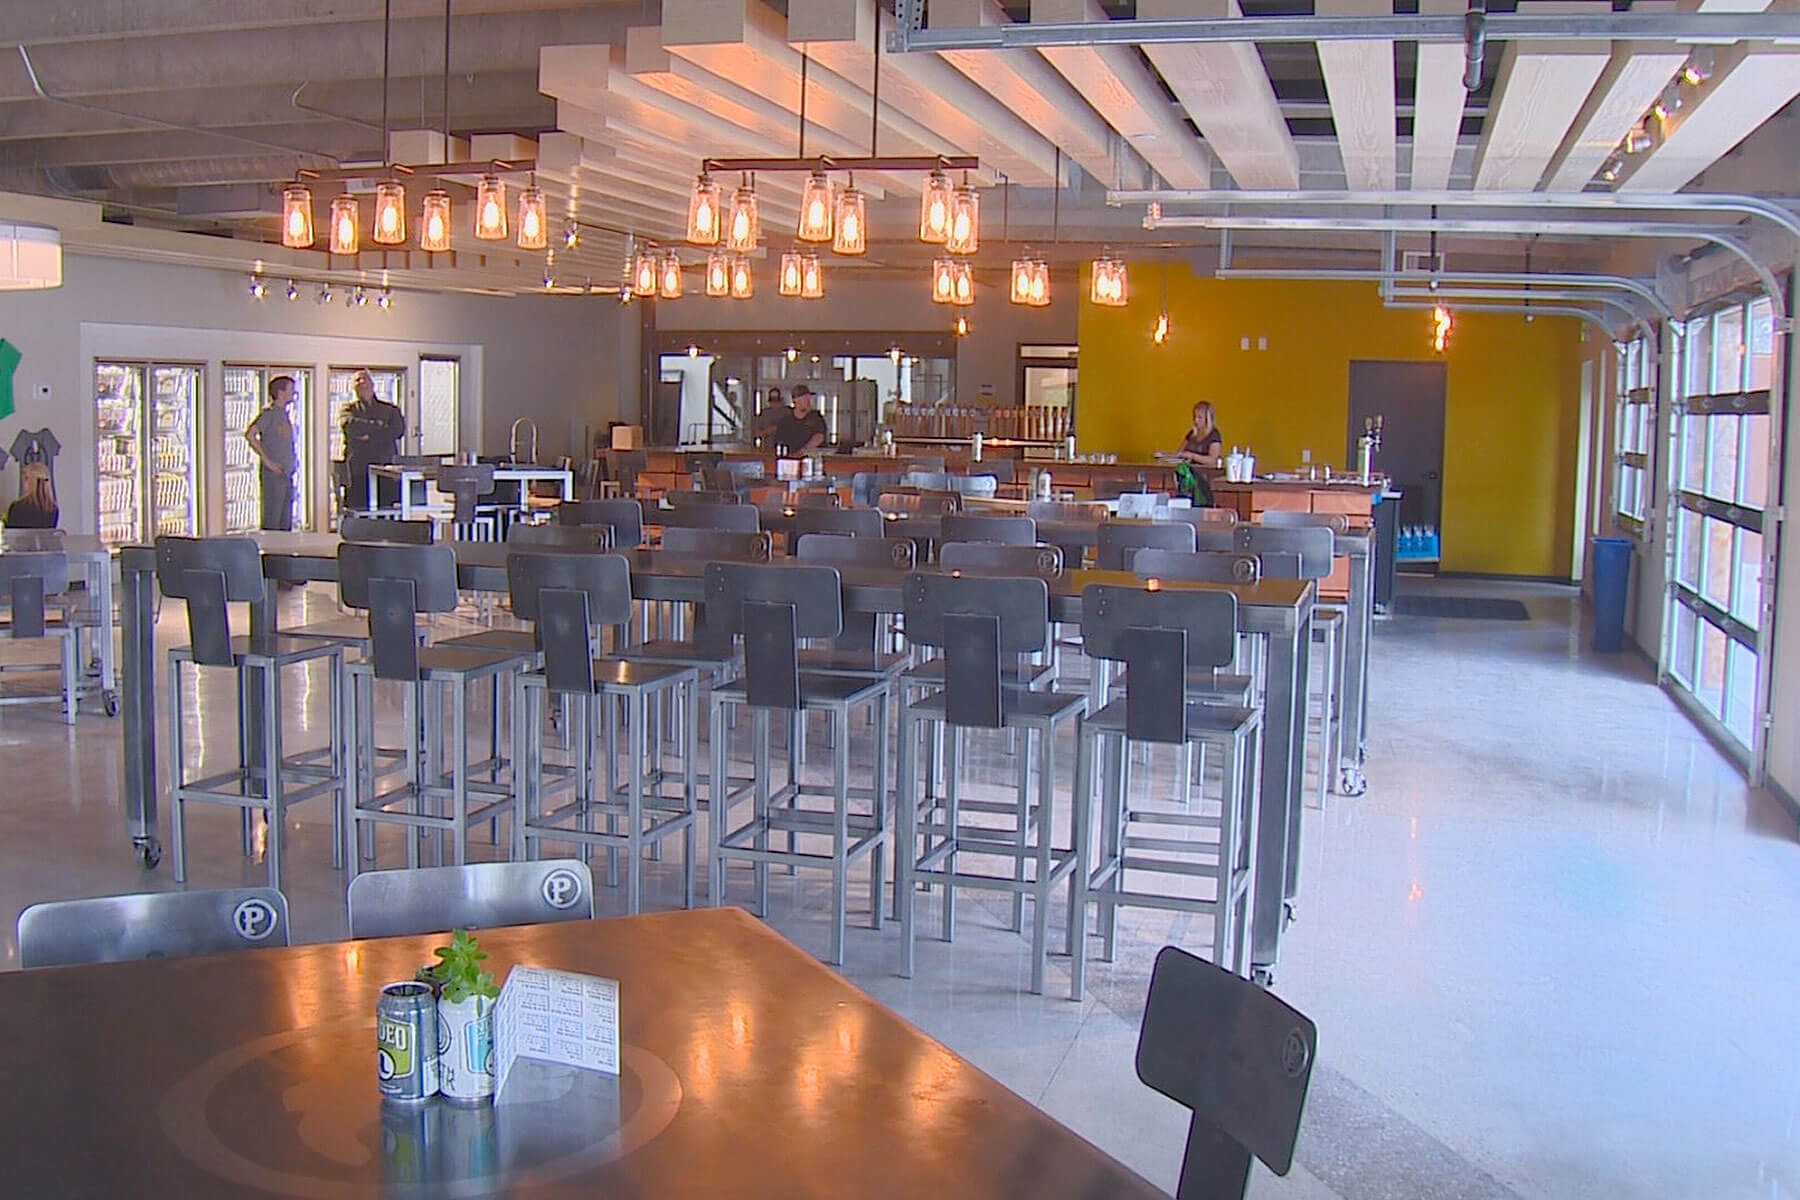 In the wake of the COVID-19 pandemic, the Payette Brewing Company has reopened their taproom and beer garden to the public.